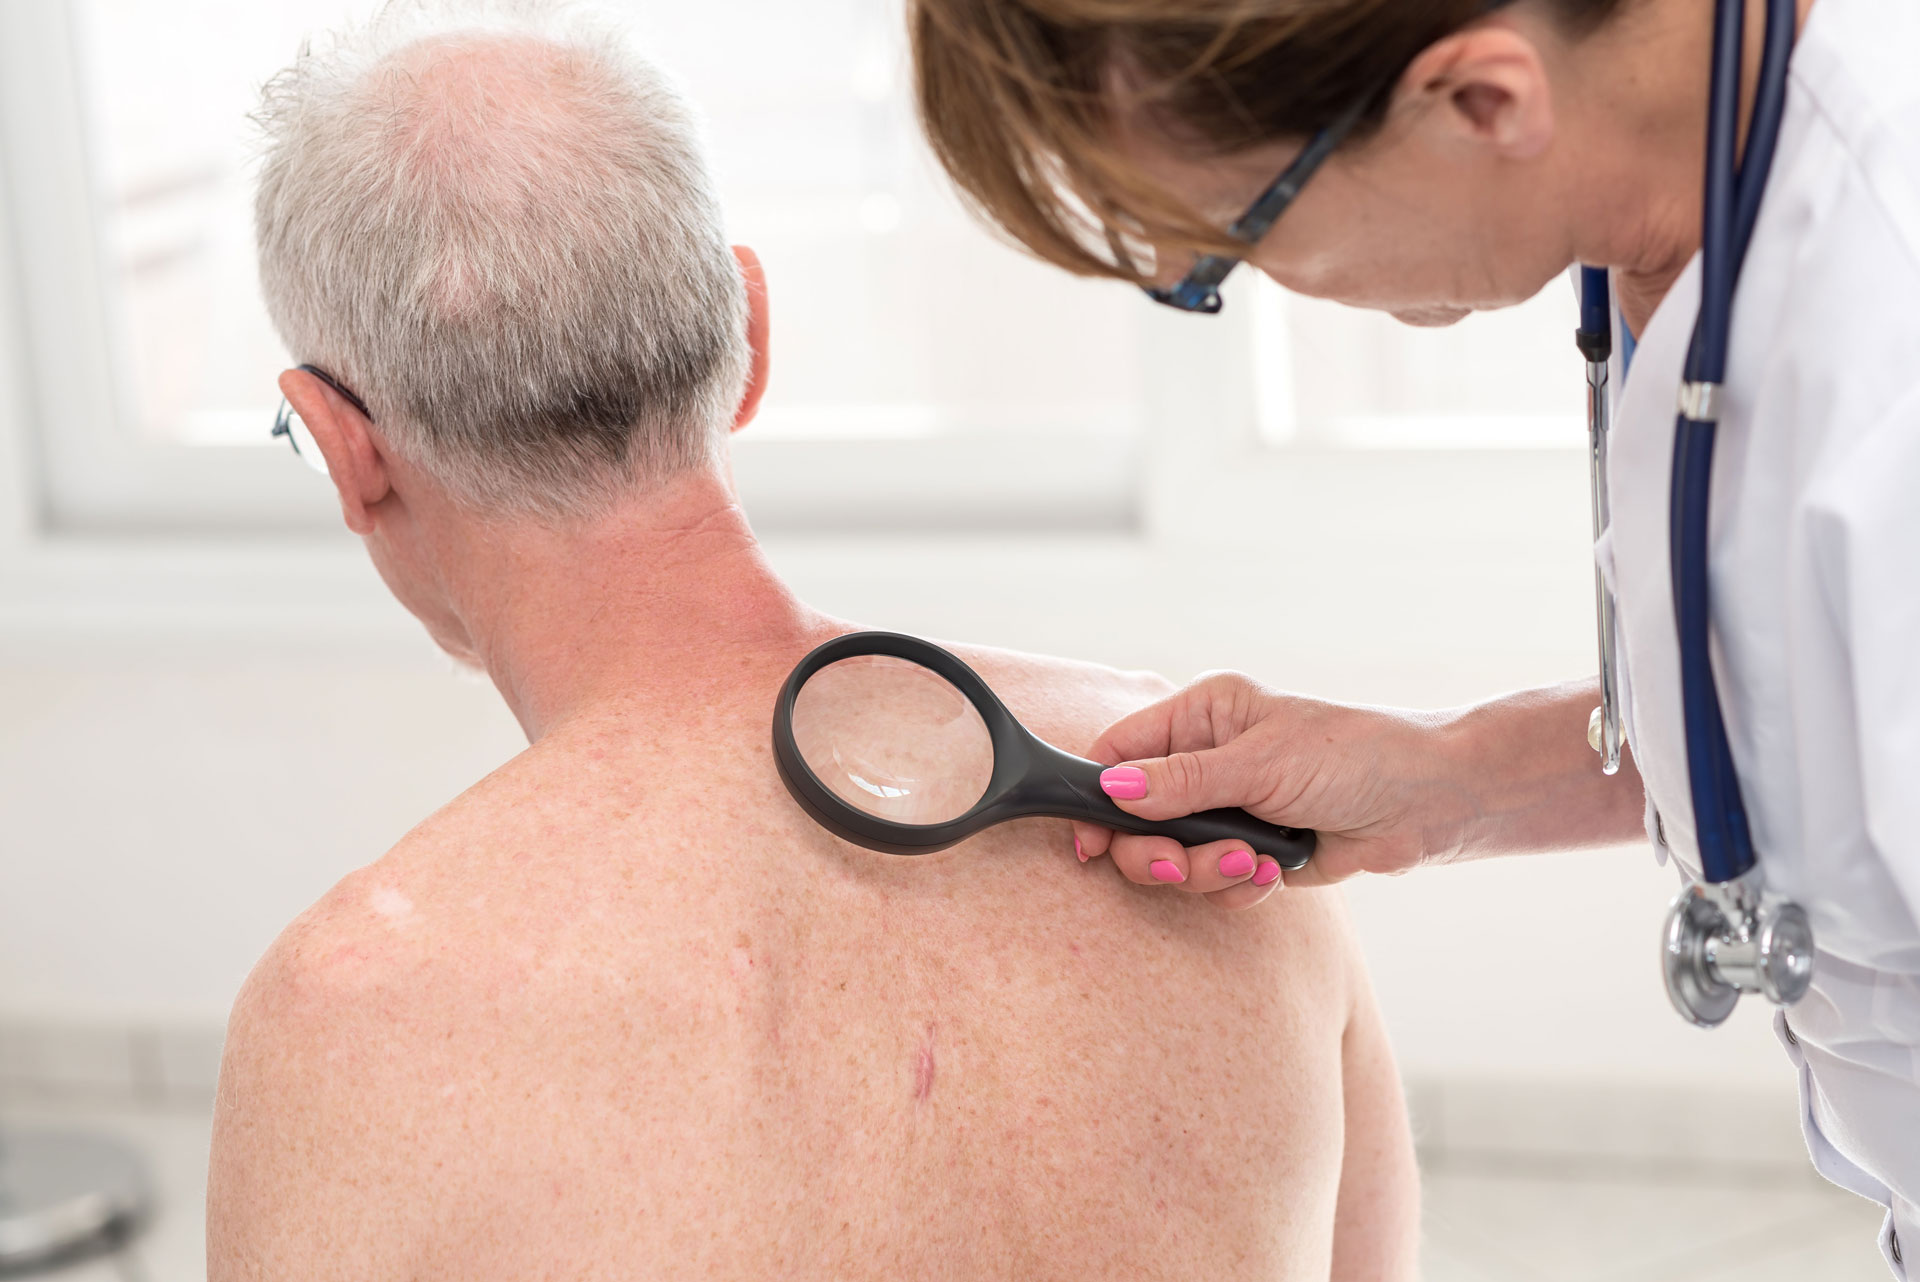 The USA Has a Serious Problem with Skin Cancer